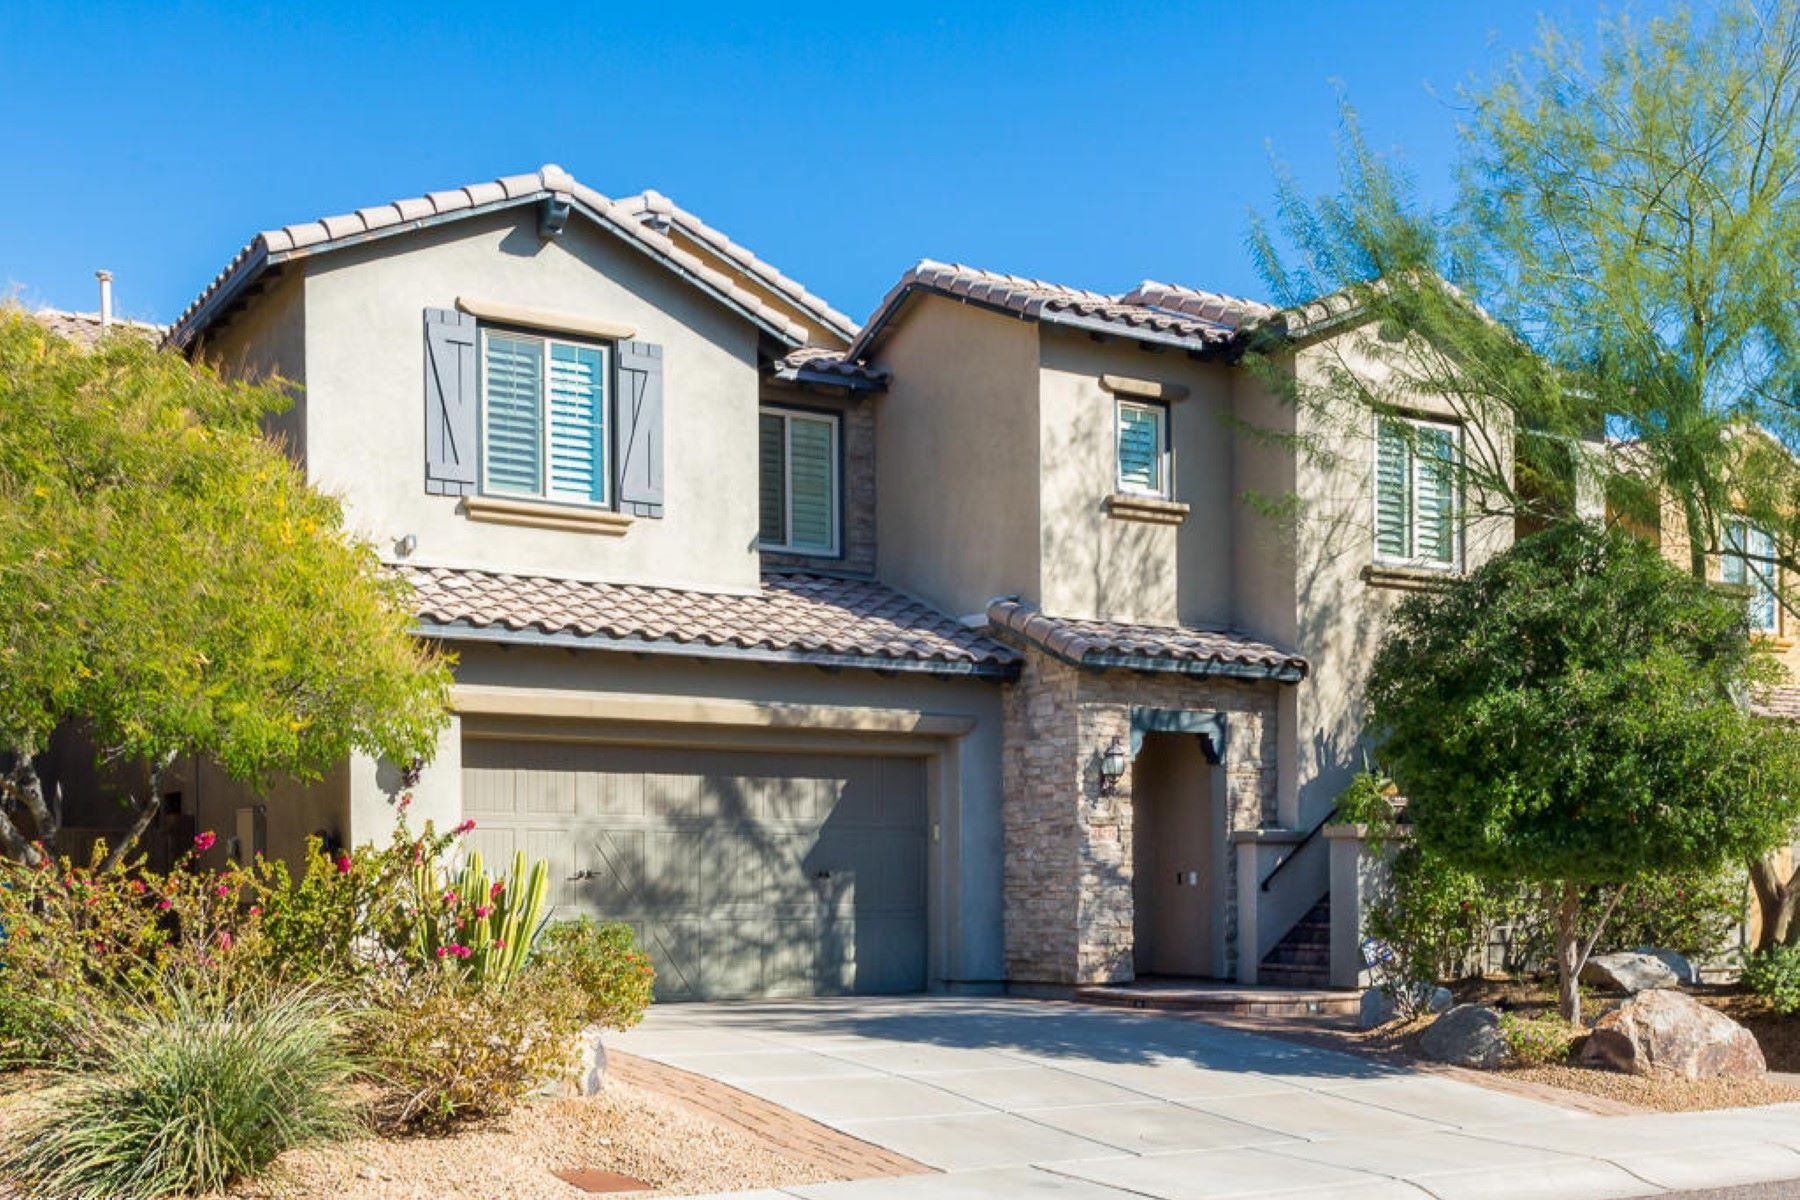 Villa per Vendita alle ore Beautiful home in the highly desirable Desert Ridge neighborhood of Fireside 21215 N 38th Pl Phoenix, Arizona, 85050 Stati Uniti